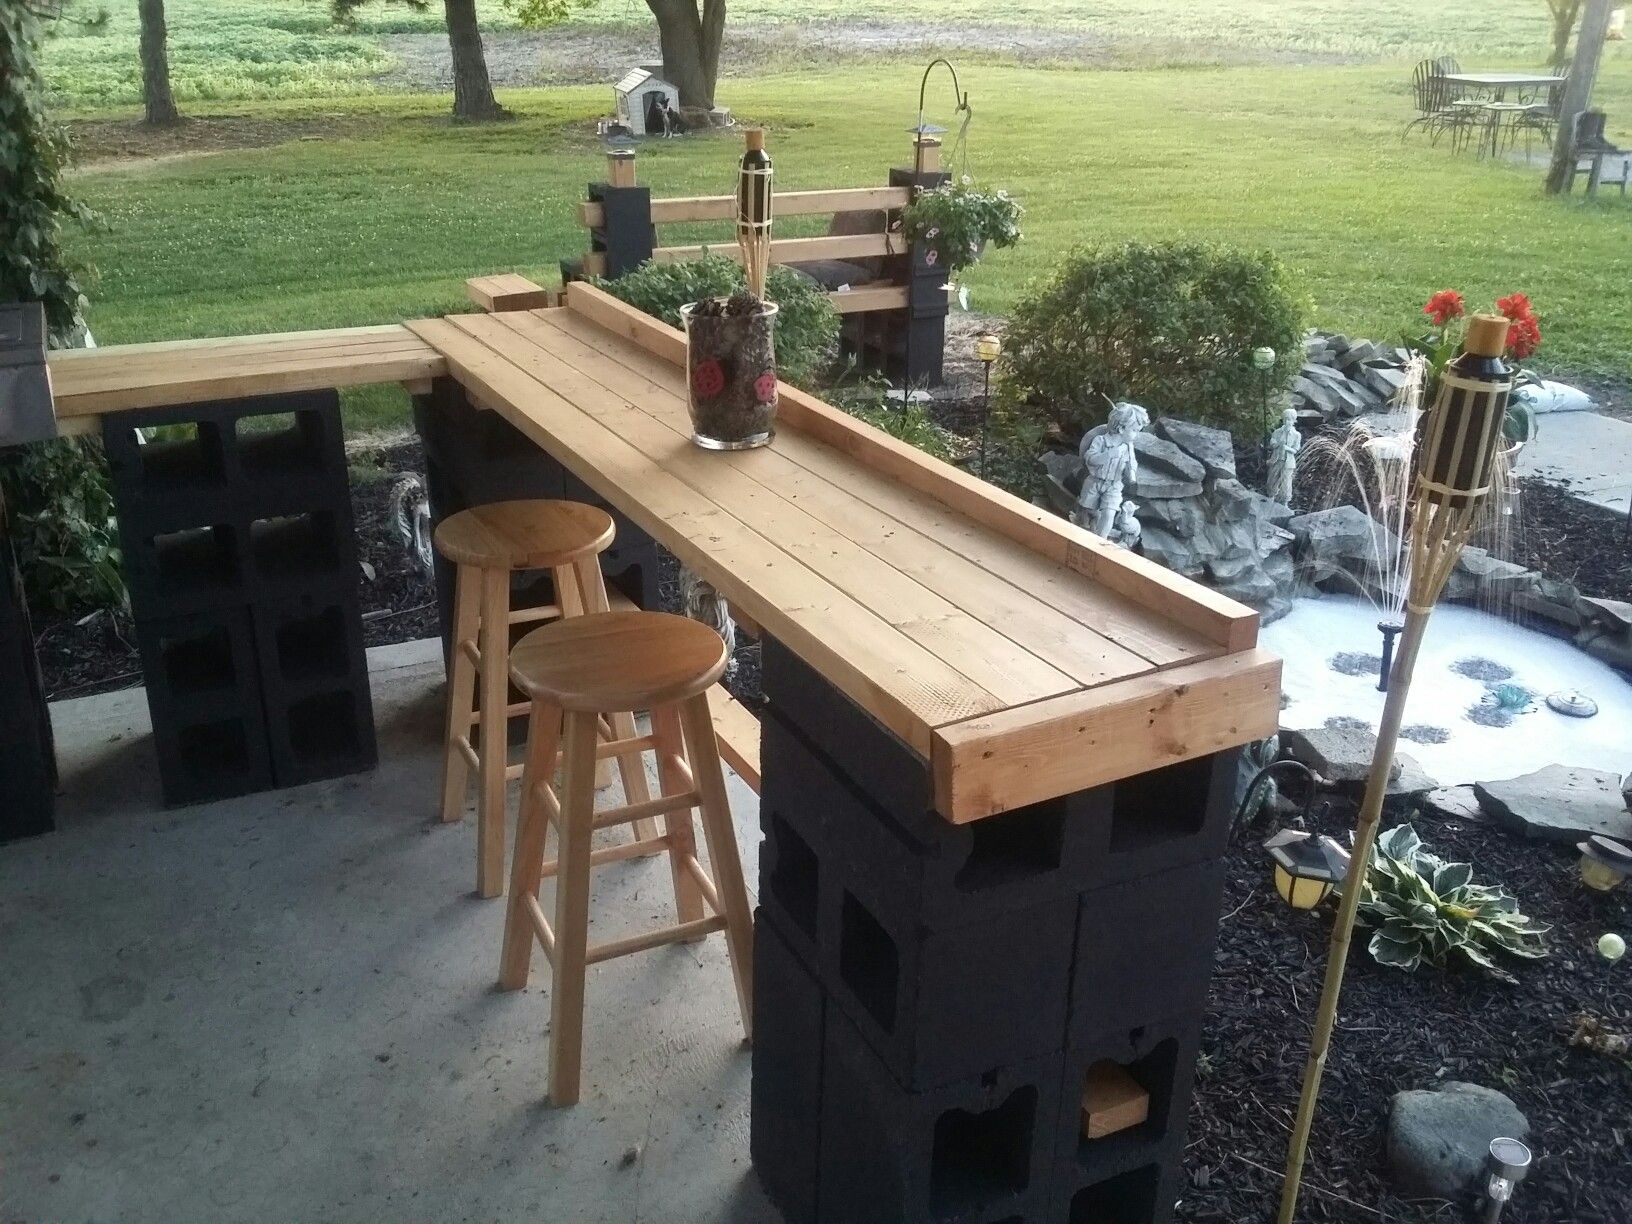 cinder block patio bar janice lininger - Outdoor Patio Bar Ideas